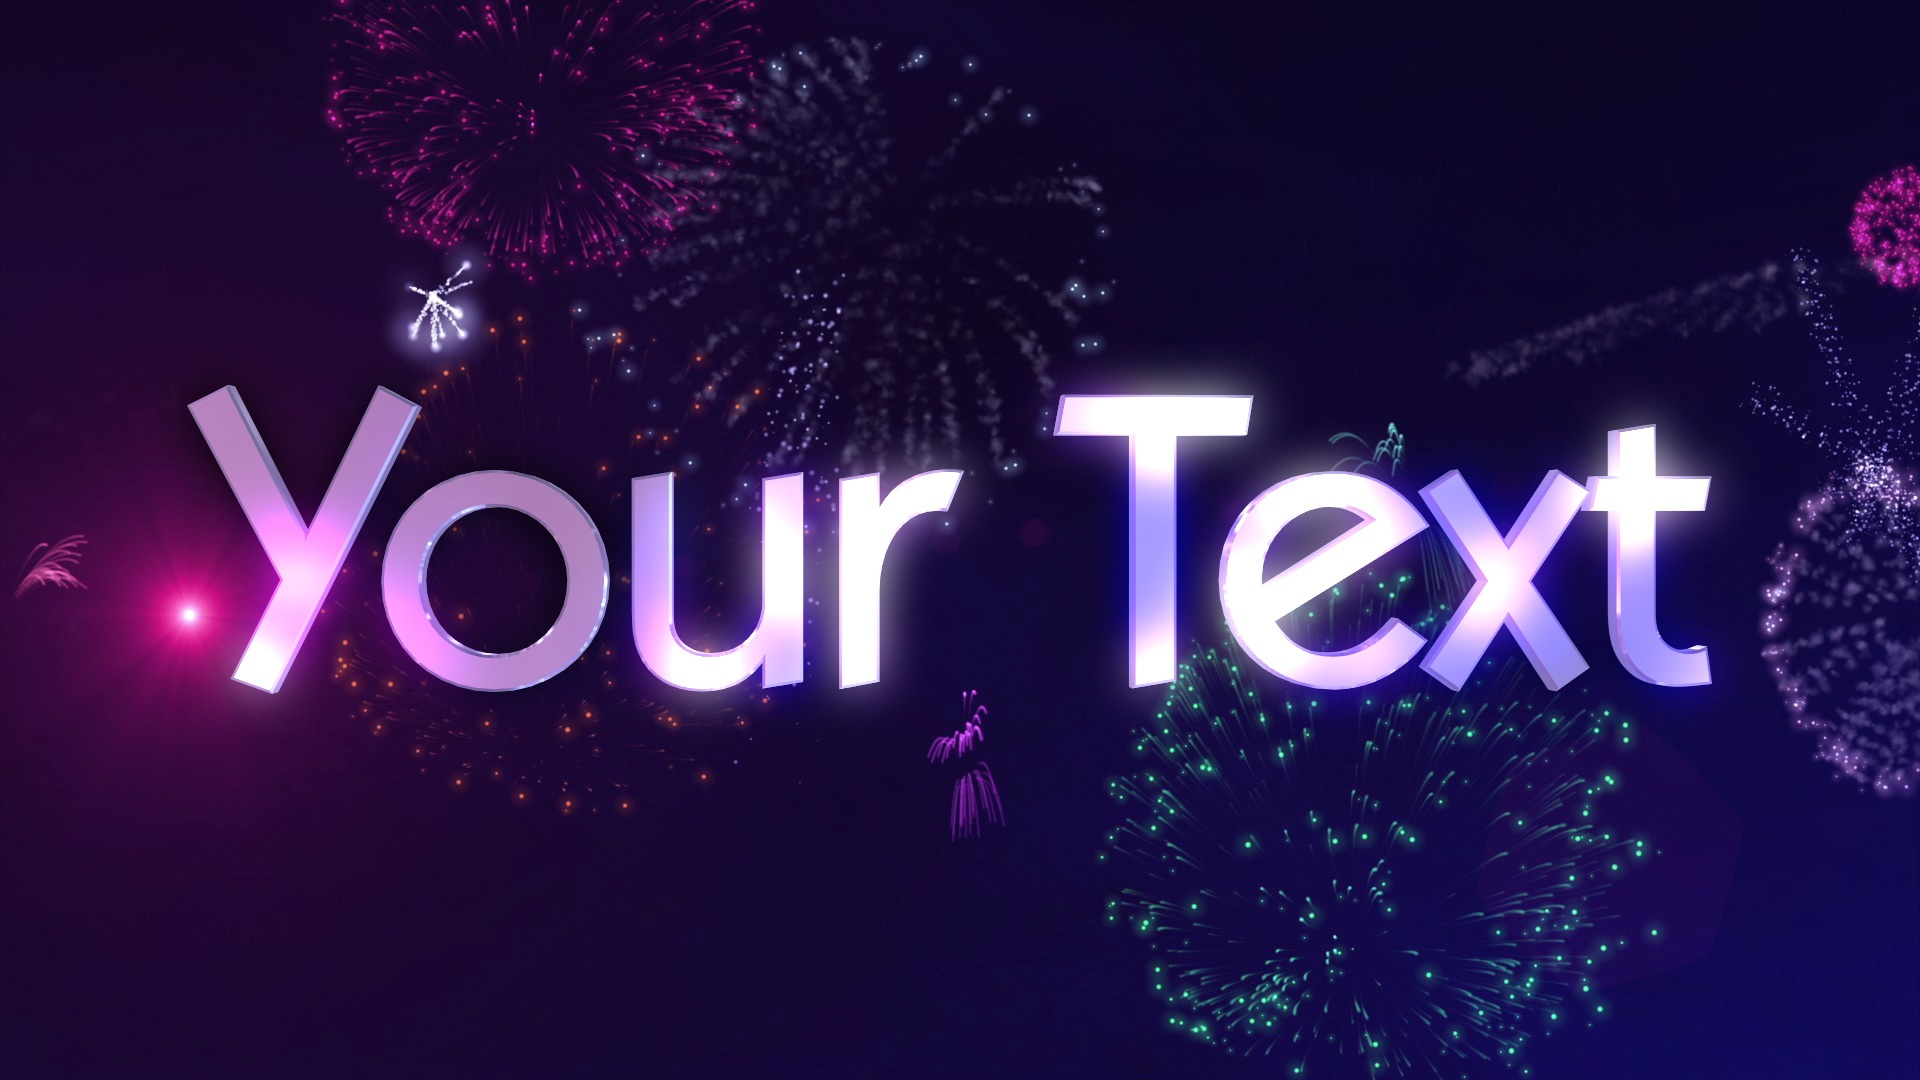 Fireworks 3D Text   Personalised animations to suit every occasion     Fireworks 3D Text   Personalised animations to suit every occasion   Stunning designs customised with your own text    Text in Motion